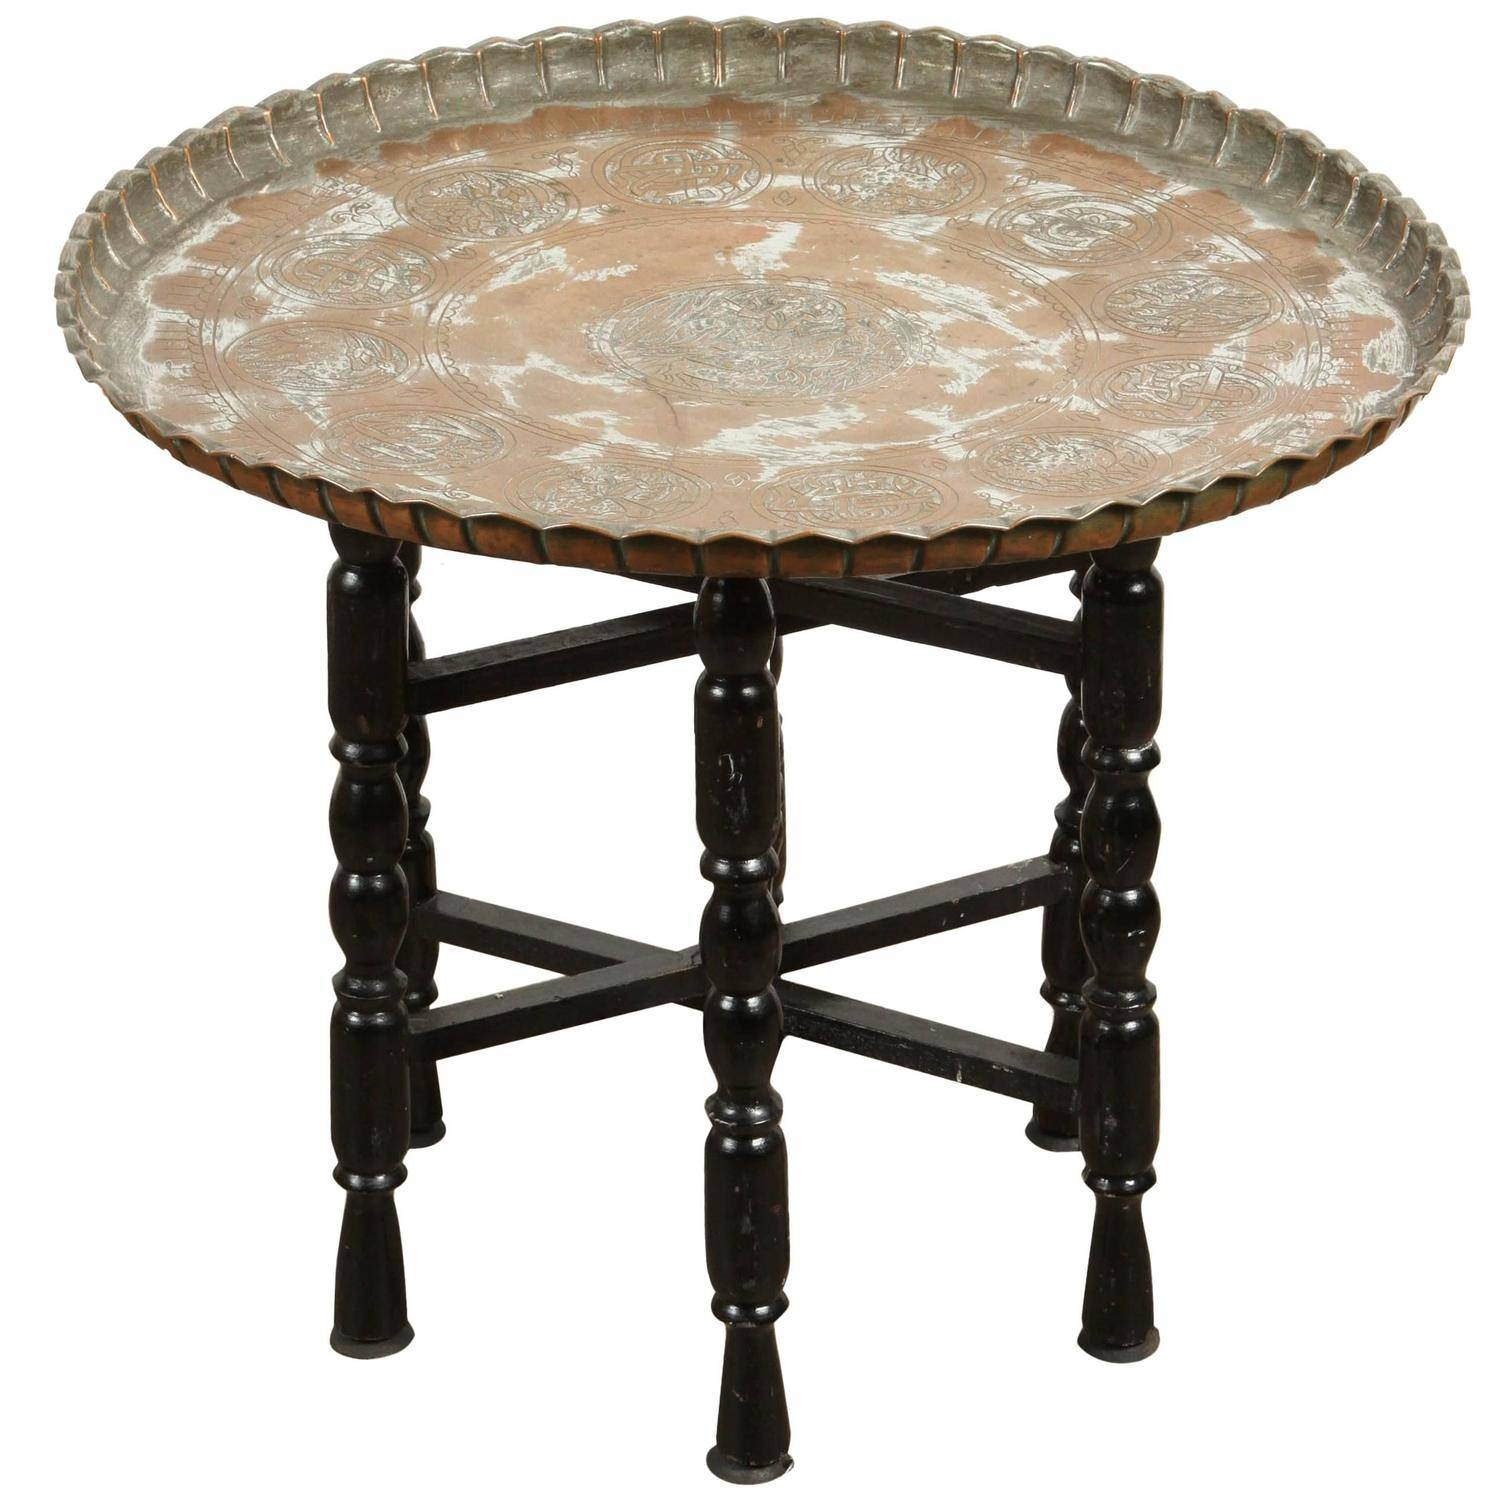 Vintage Middle Eastern Etched Round Copper Tray Table At 1Stdibs pertaining to Round Tray Coffee Tables (Image 29 of 30)